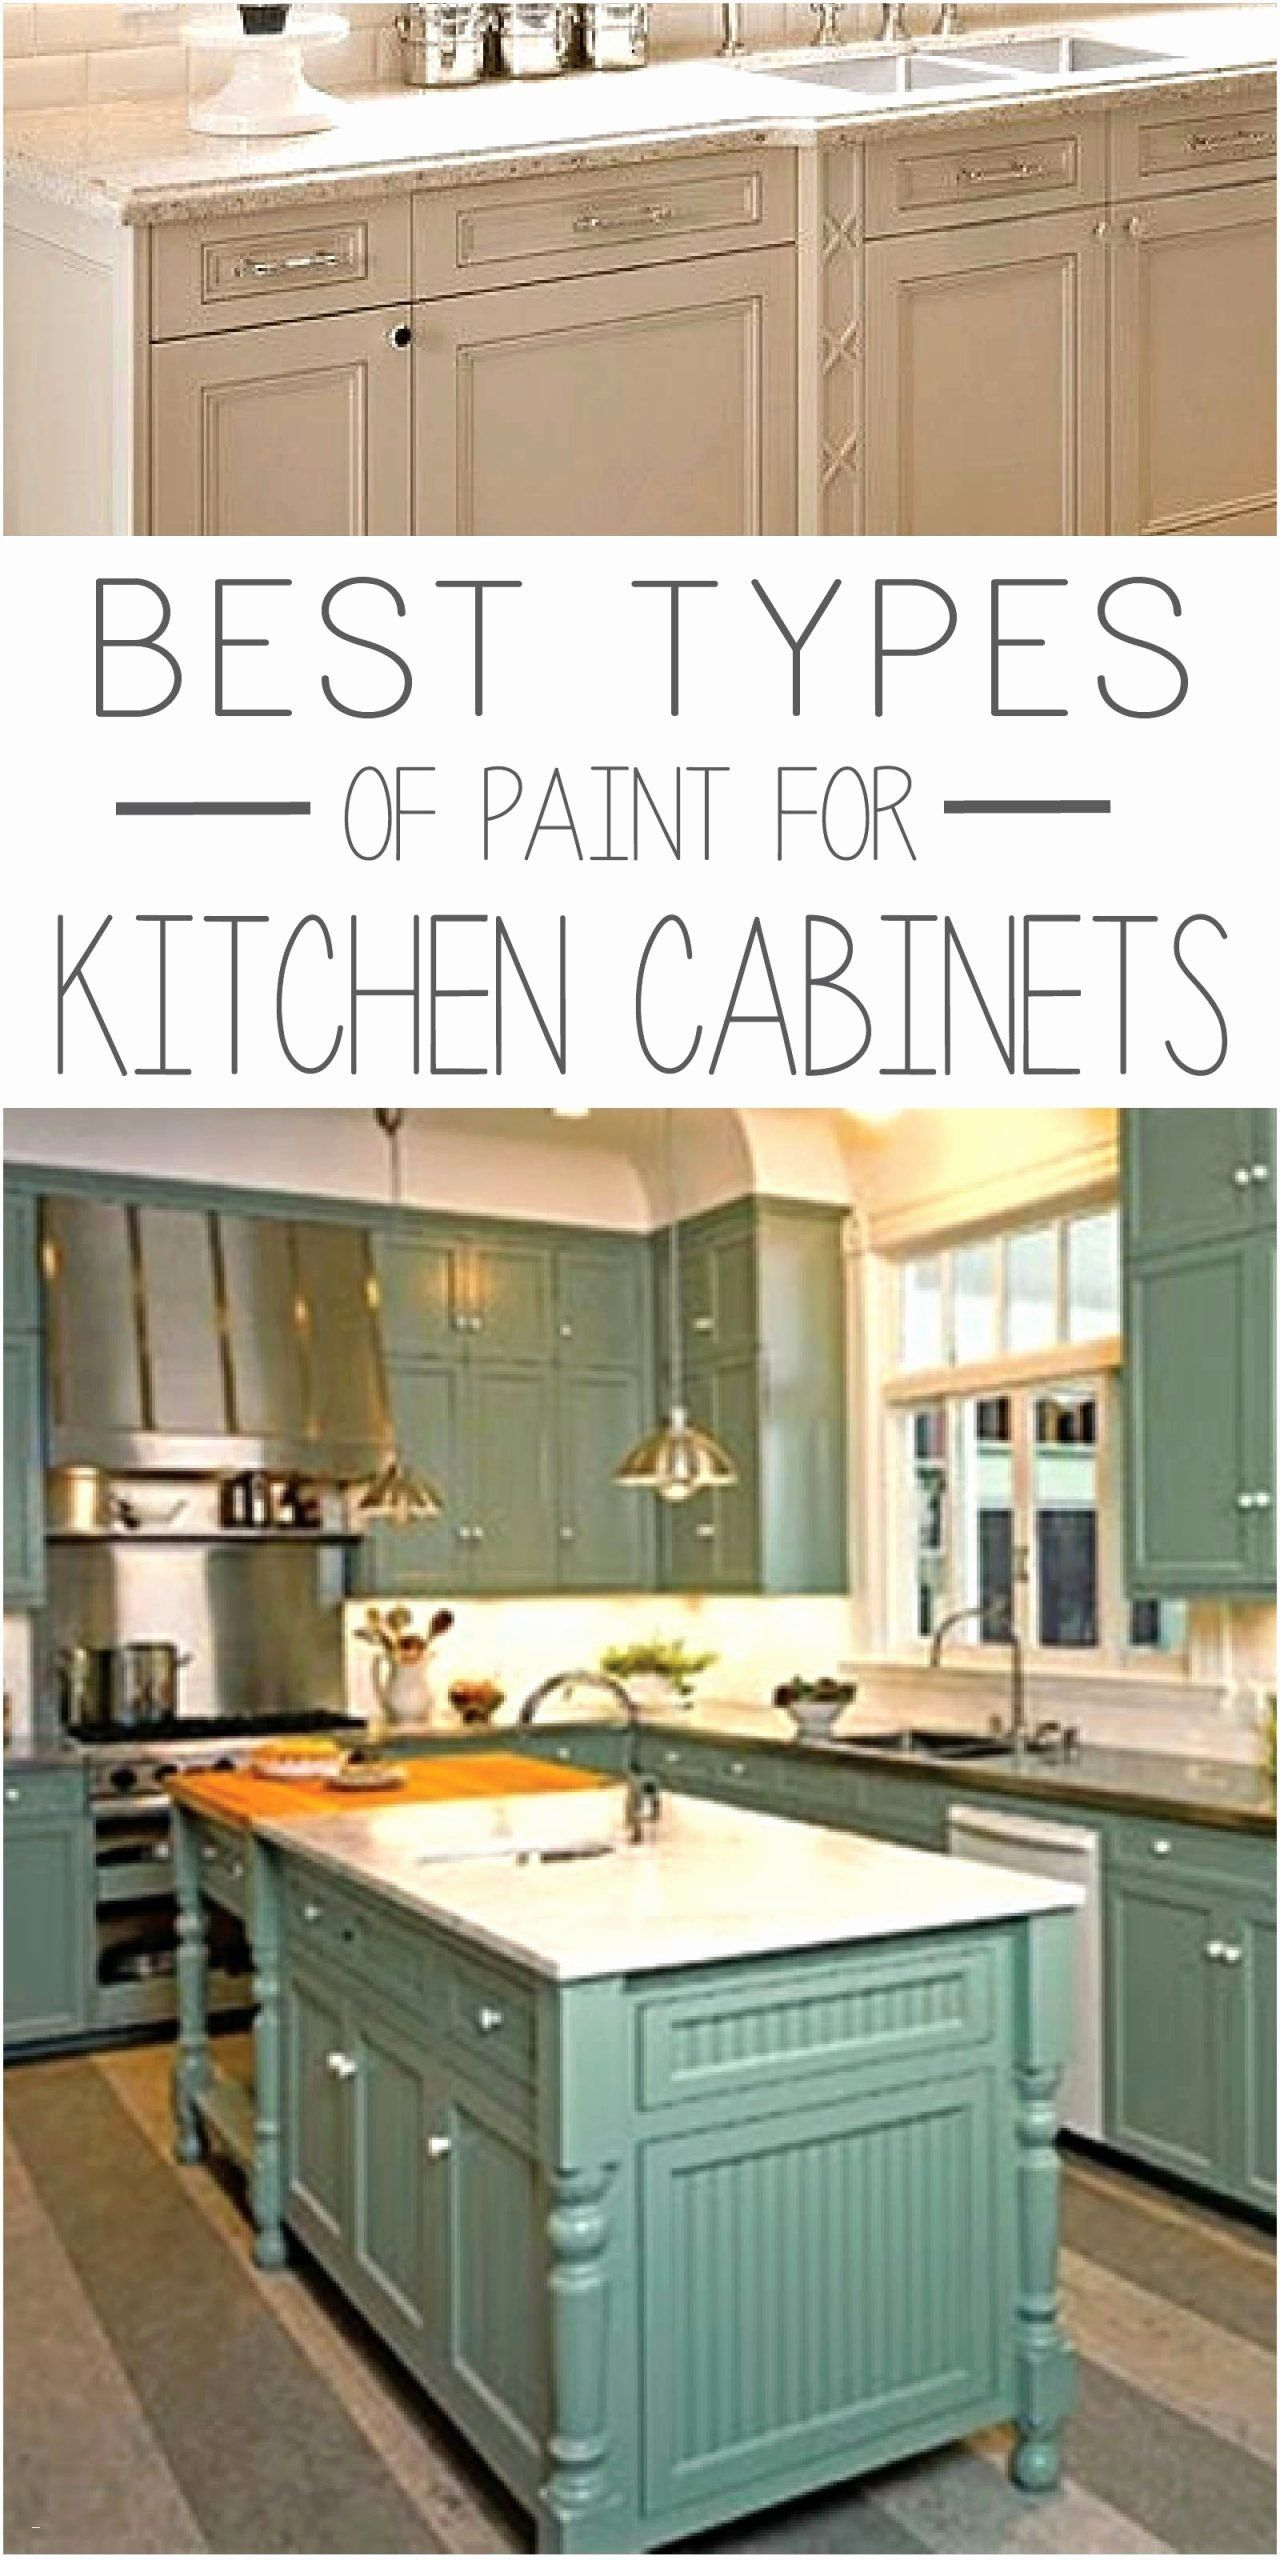 Cost To Remodel Kitchen Fresh 17 Stunning Average Cost Hardwood Floors Kitchen Cabinets Home Depot Cheap Kitchen Cabinets Painting Kitchen Cabinets